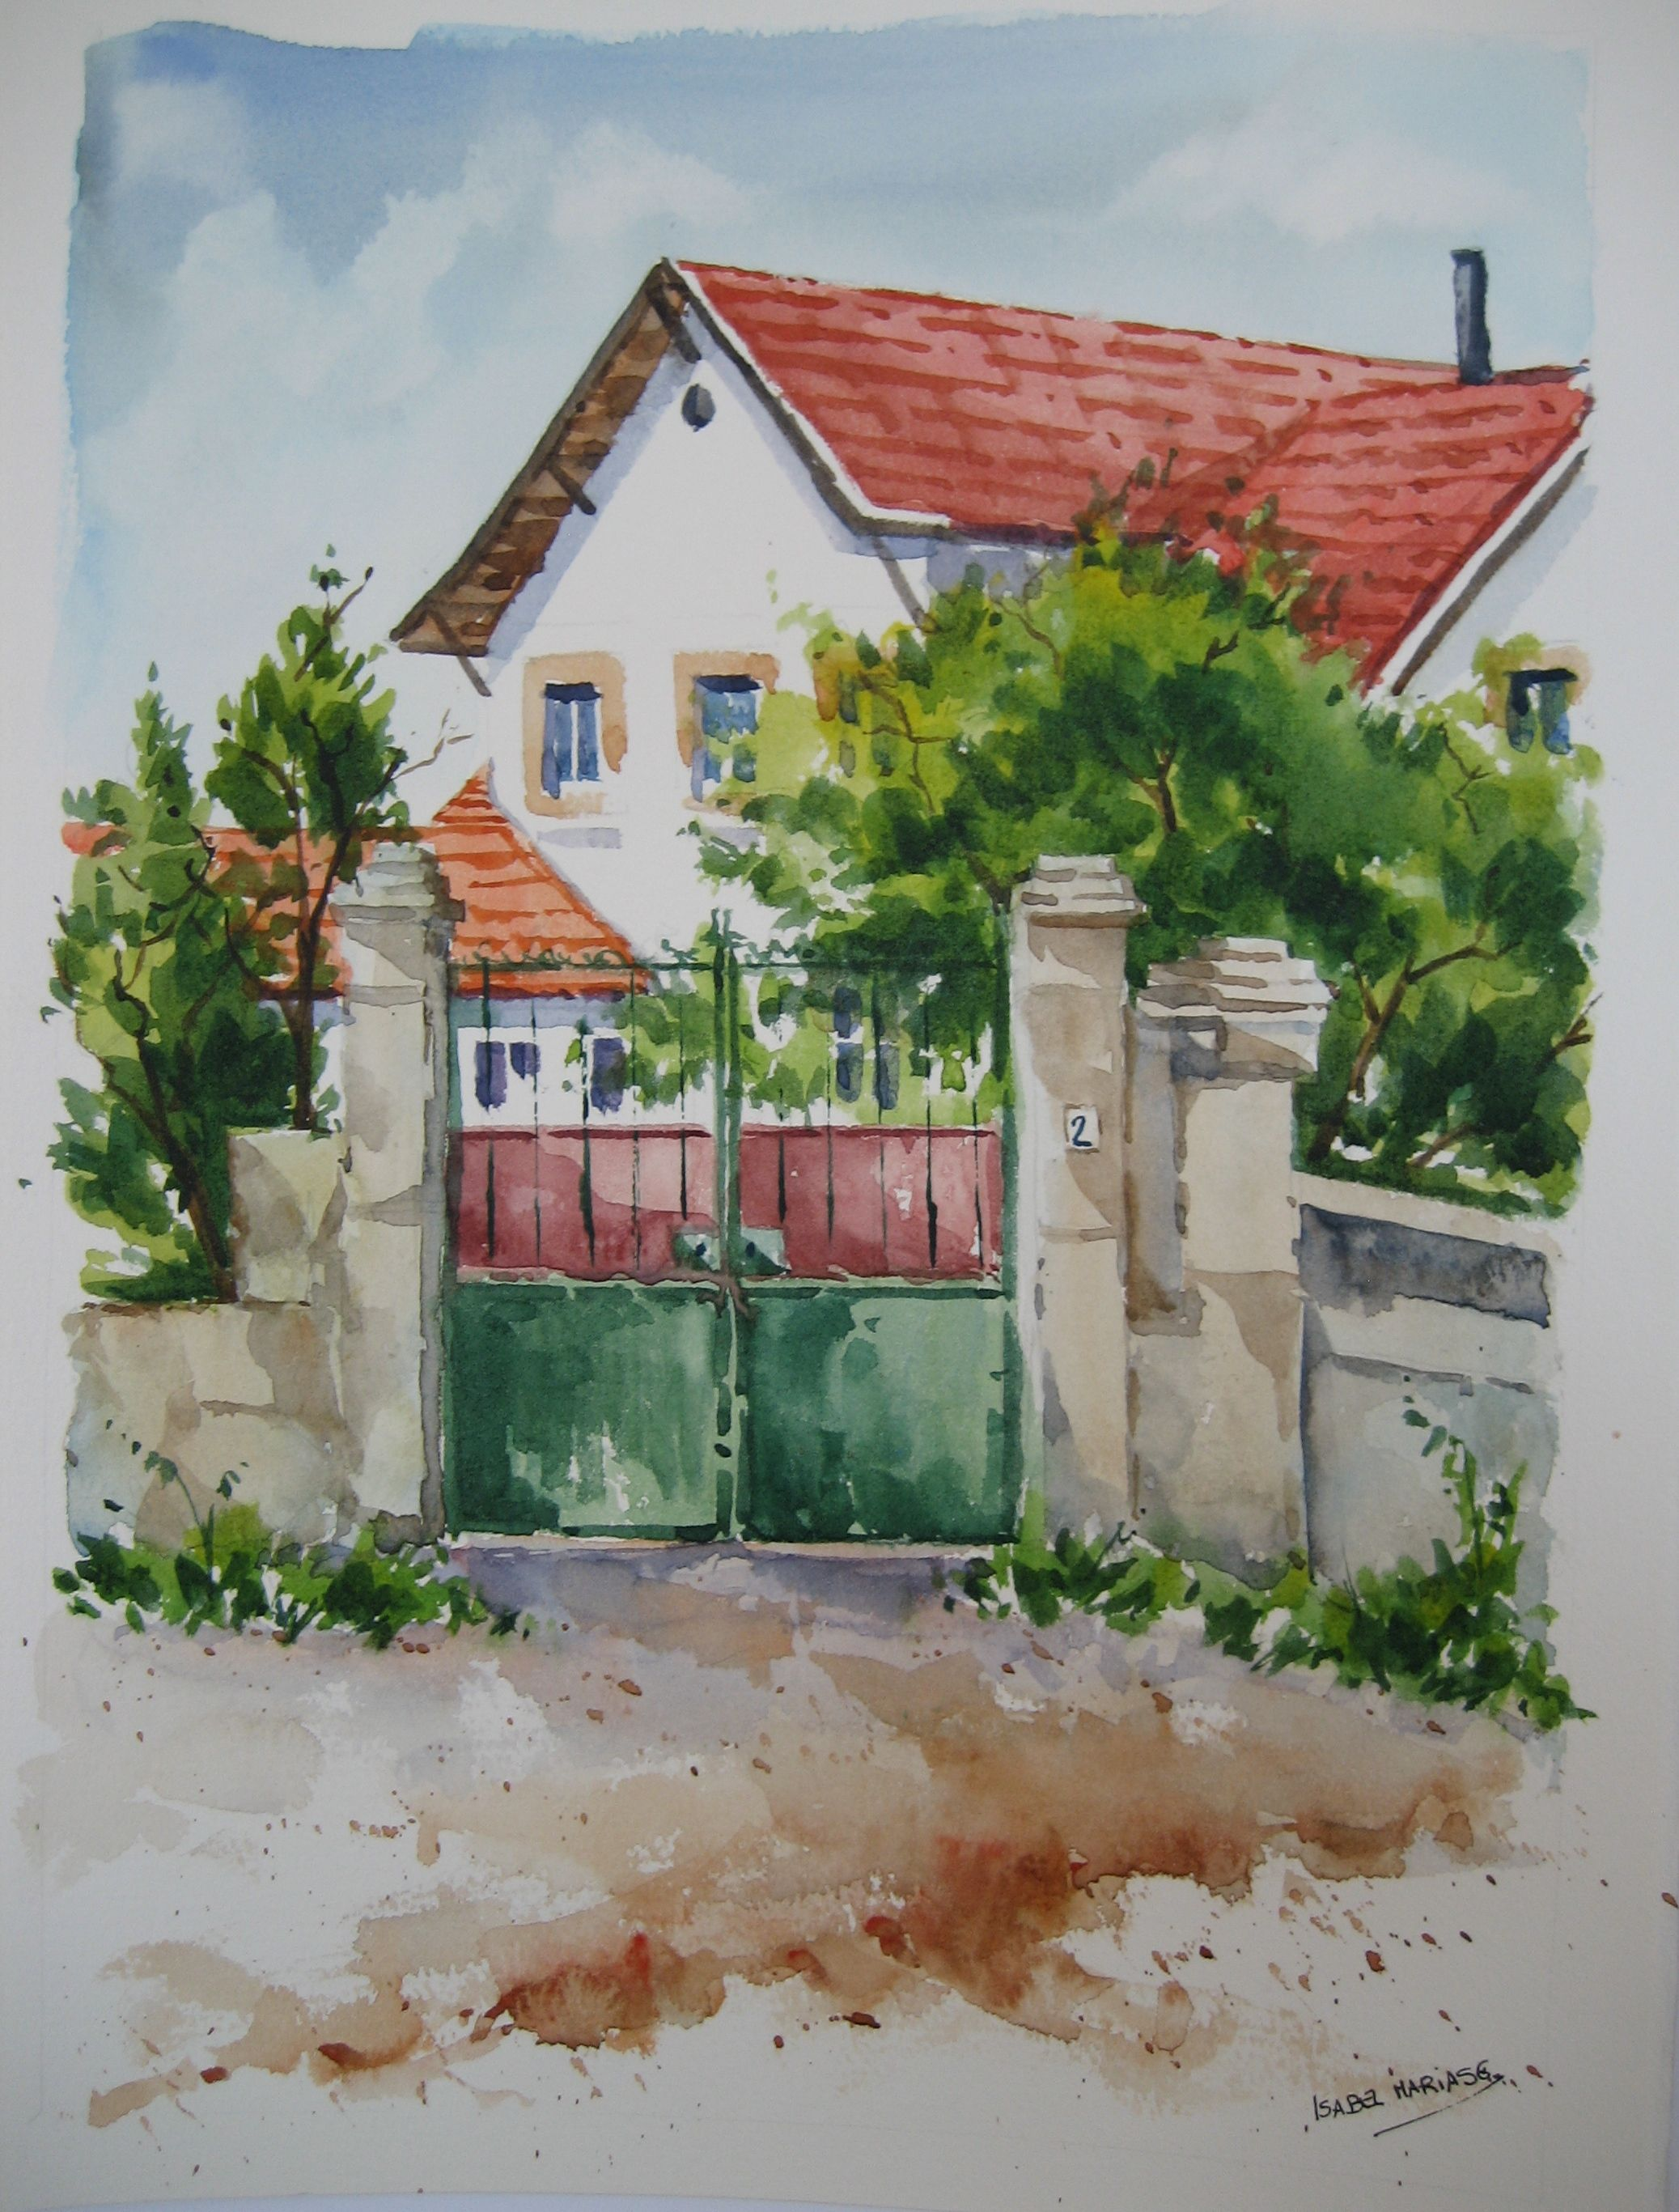 Casa En Cercedilla Watercolor